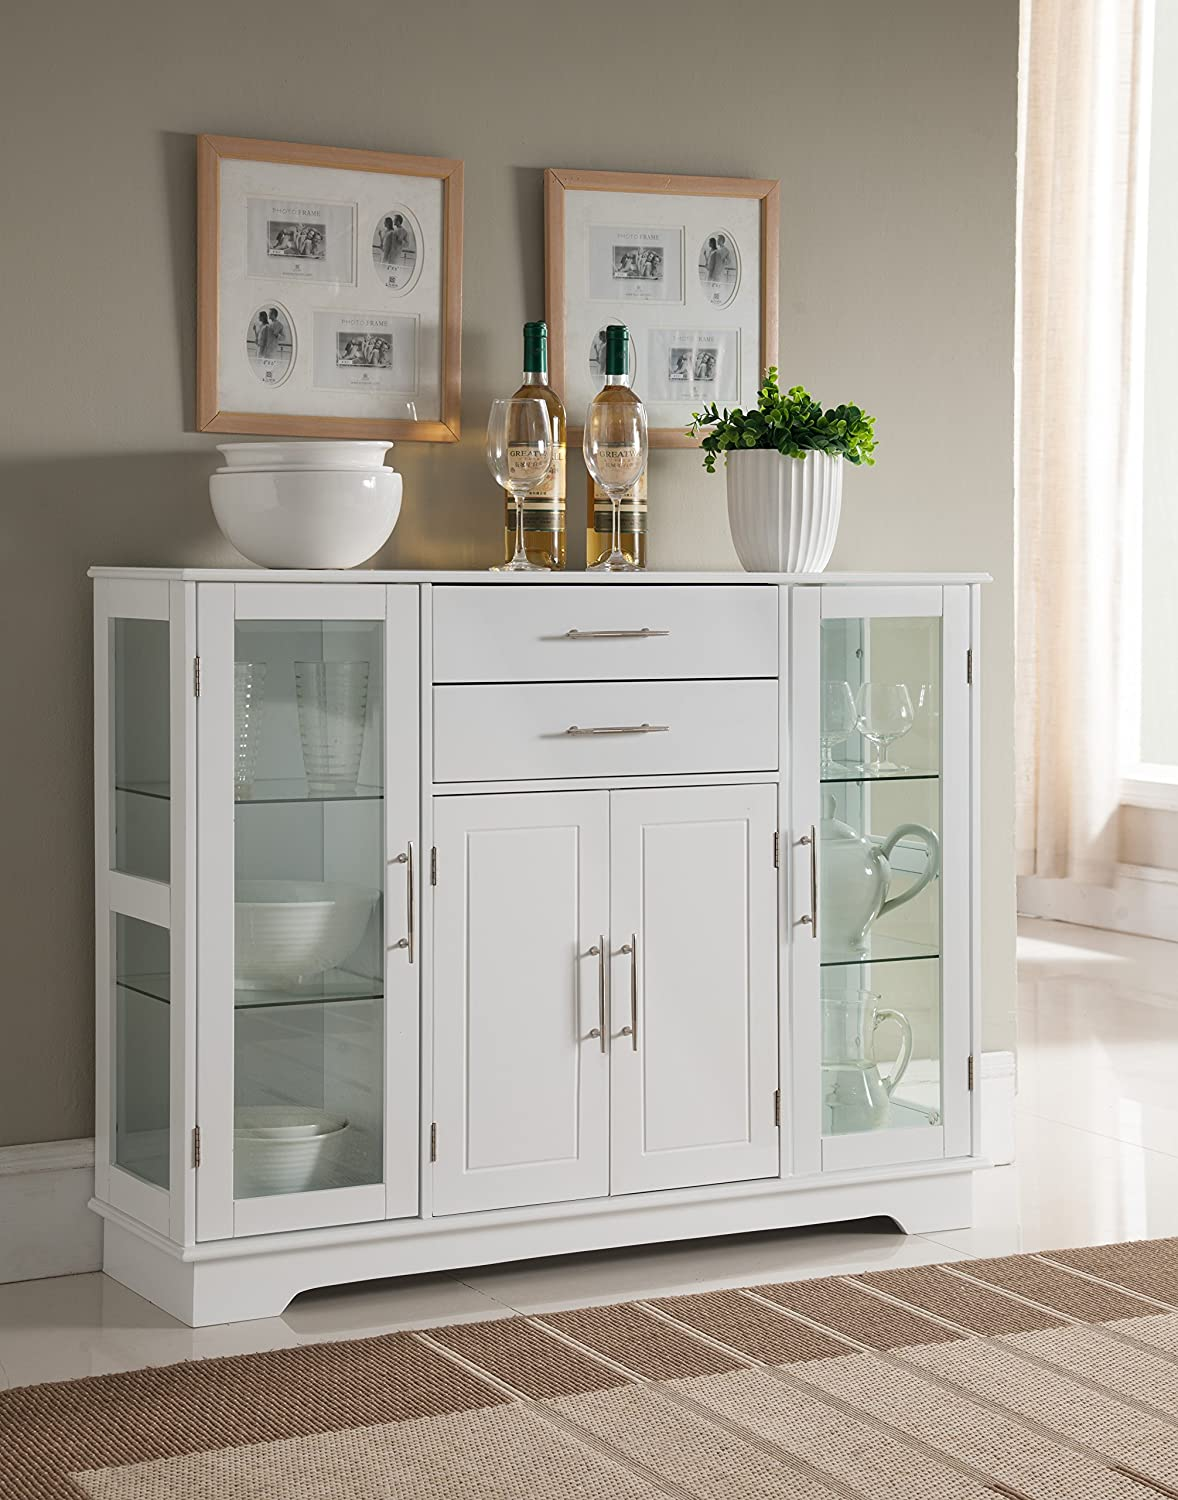 Charmant Amazon.com   Kings Brand Kitchen Storage Cabinet Buffet With Glass Doors,  White   Buffets U0026 Sideboards